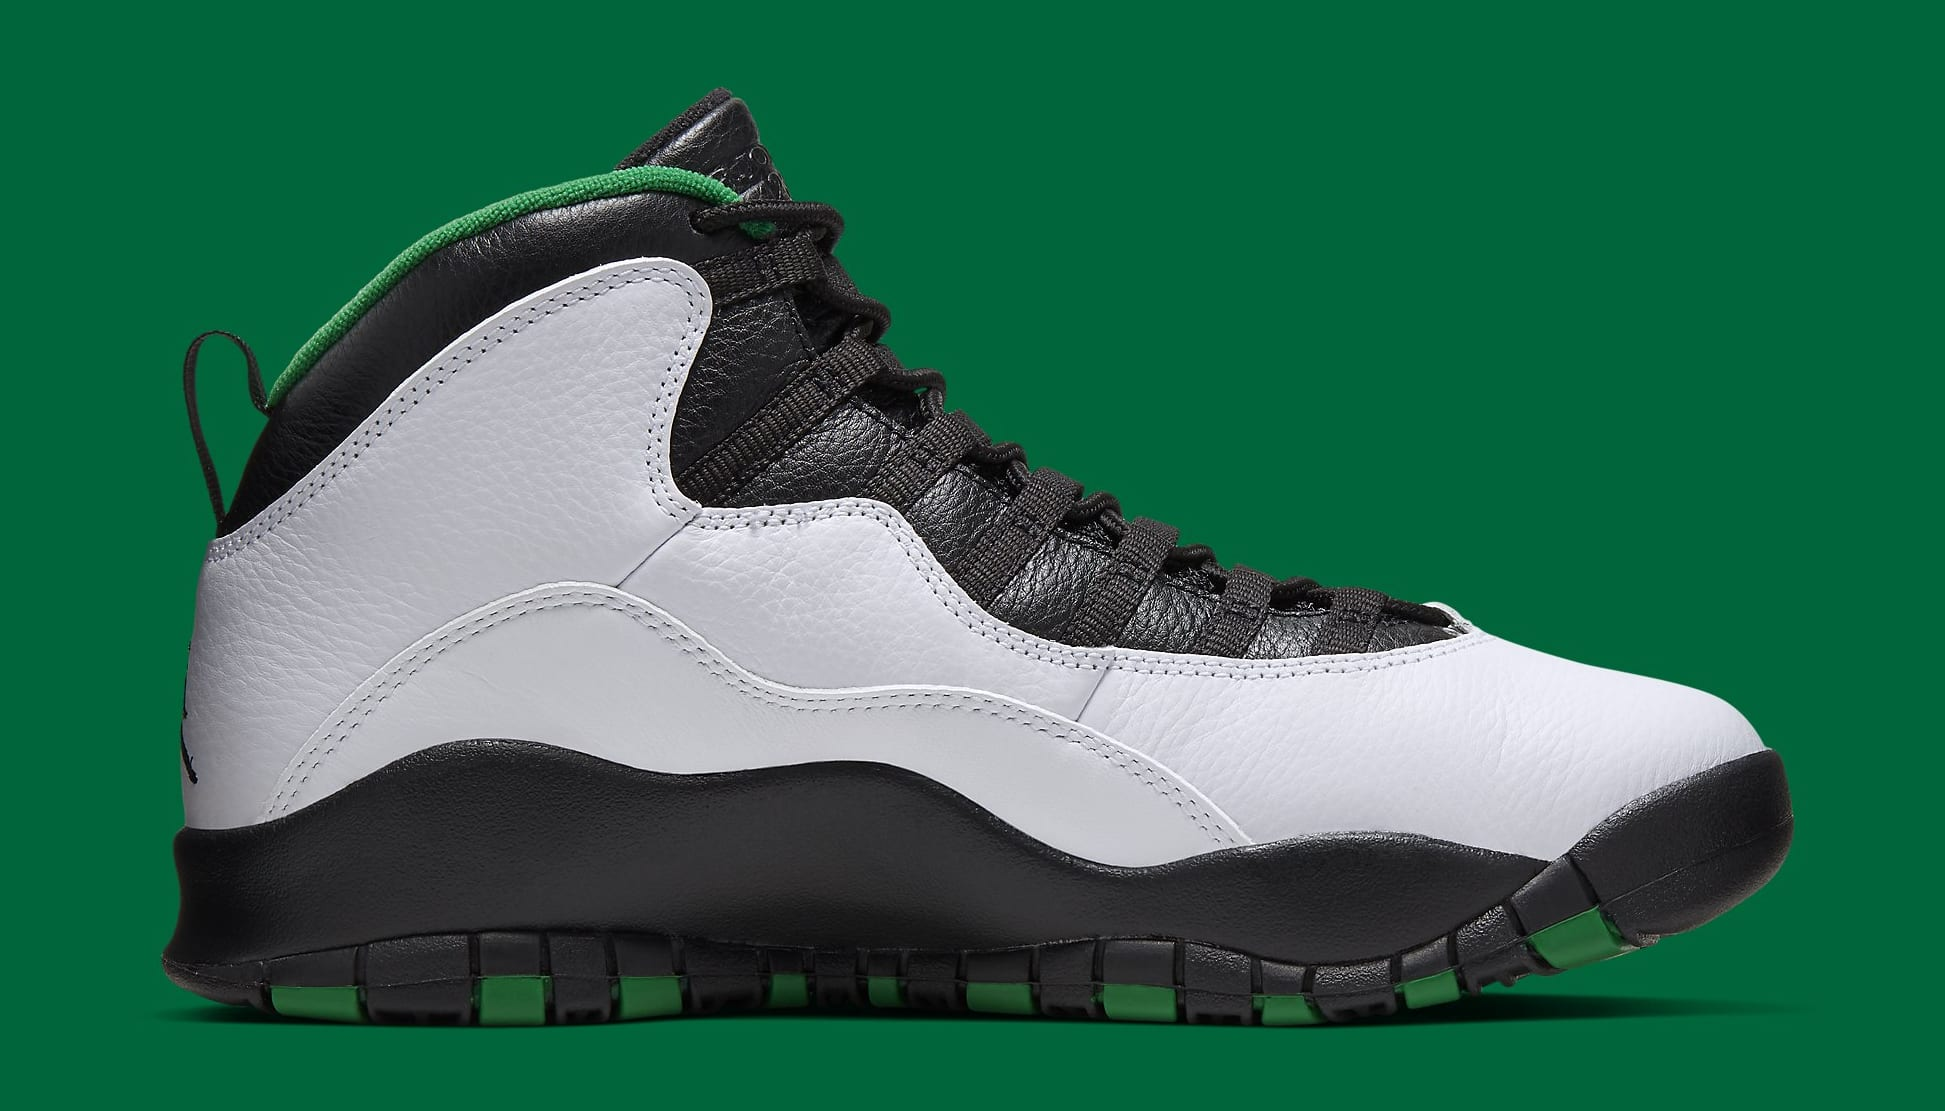 air-jordan-10-x-retro-seattle-310805-137-medial